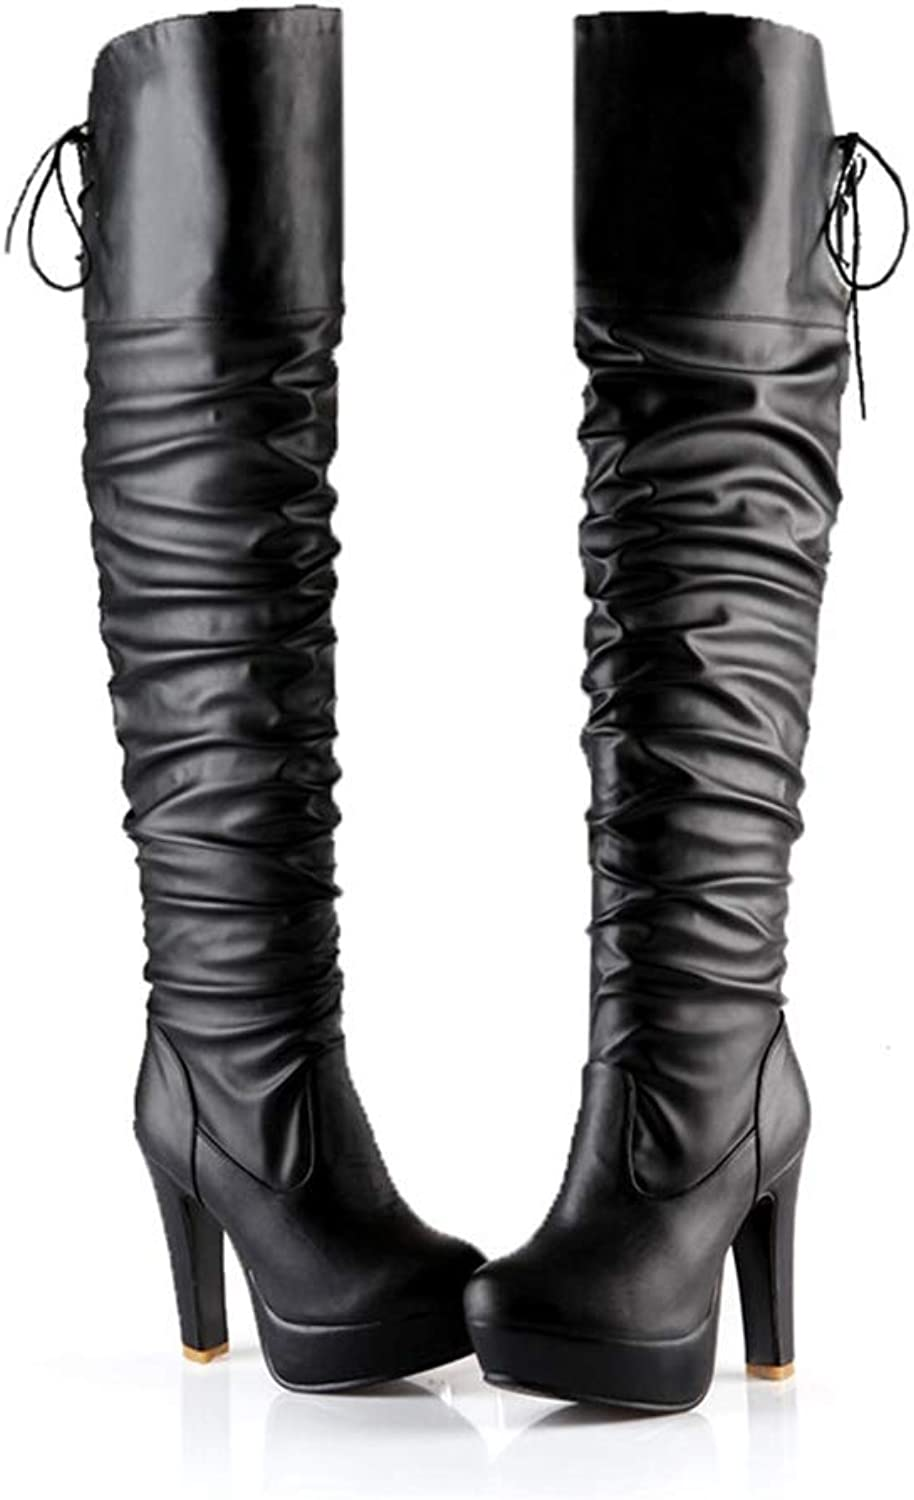 Hoxekle Women Over The Knee High Boot Winter Soft Leather Long High Heel Boot Platform Round Toe Female Fashion Sexy Party Casual shoes